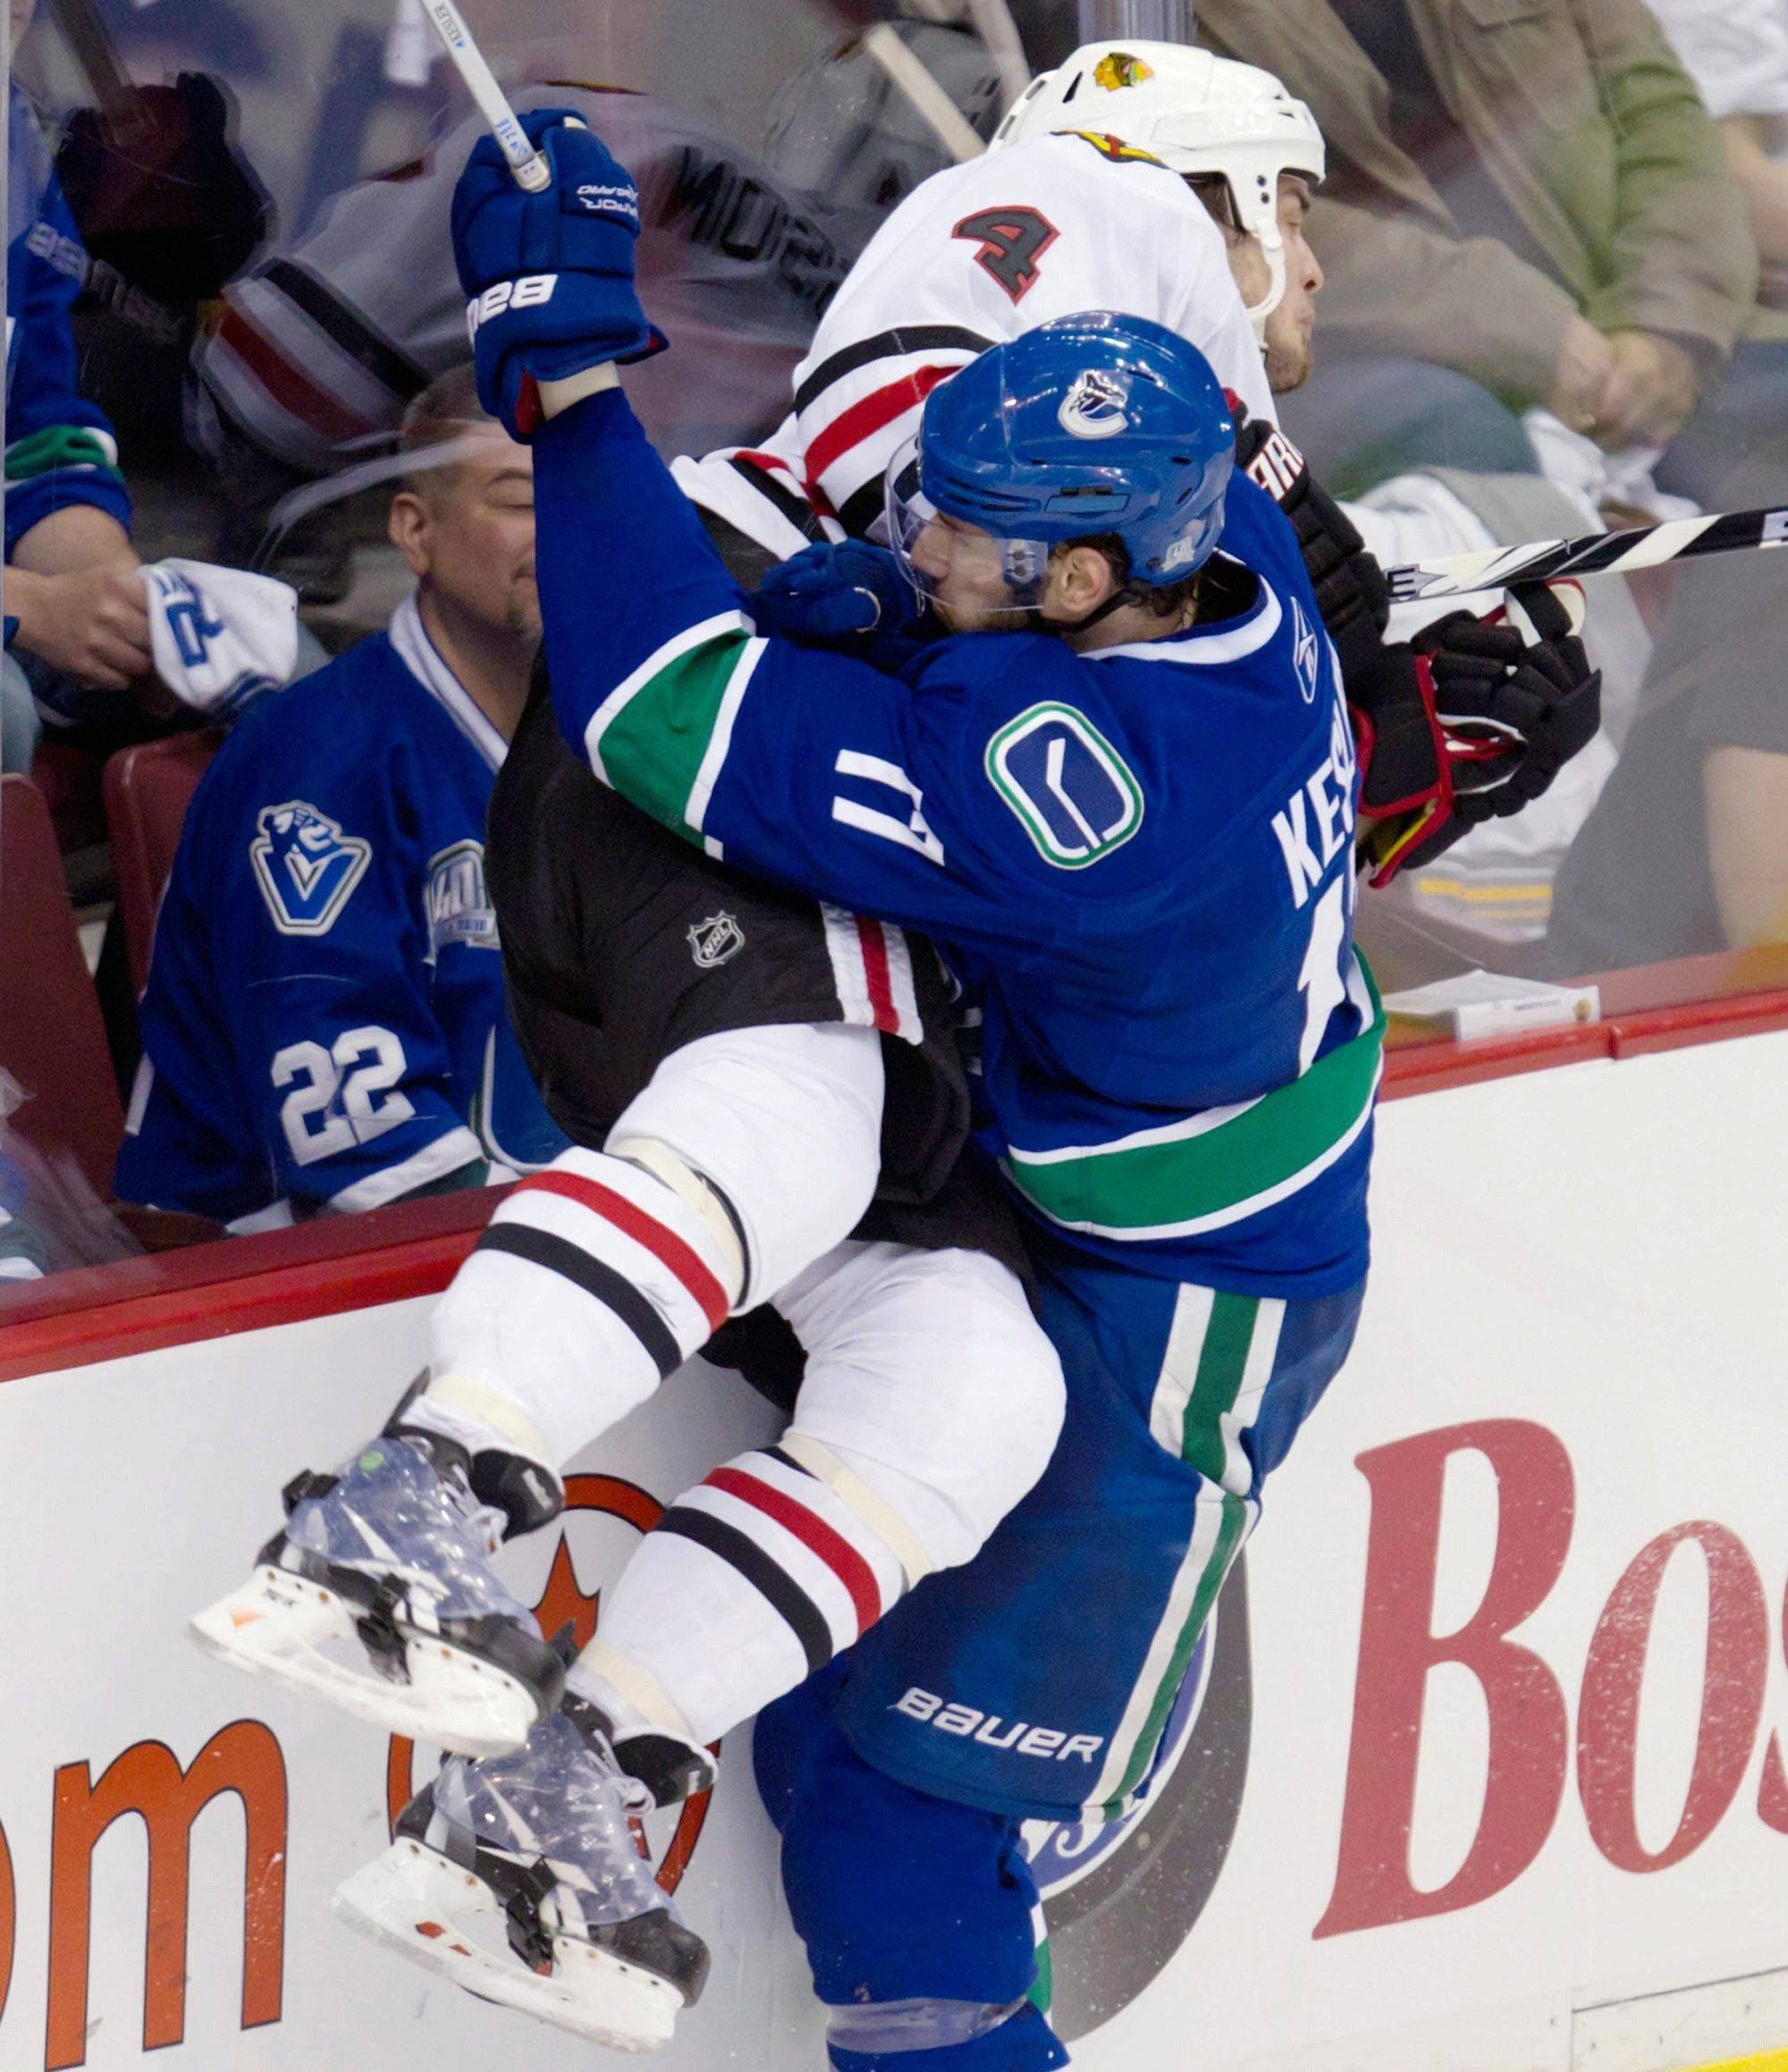 Vancouver Canucks' Ryan Kesler checks Chicago Blackhawks' Niklas Hjalmarsson during the first period of Game 7 of an NHL hockey Stanley Cup first-round playoff series Tuesday.